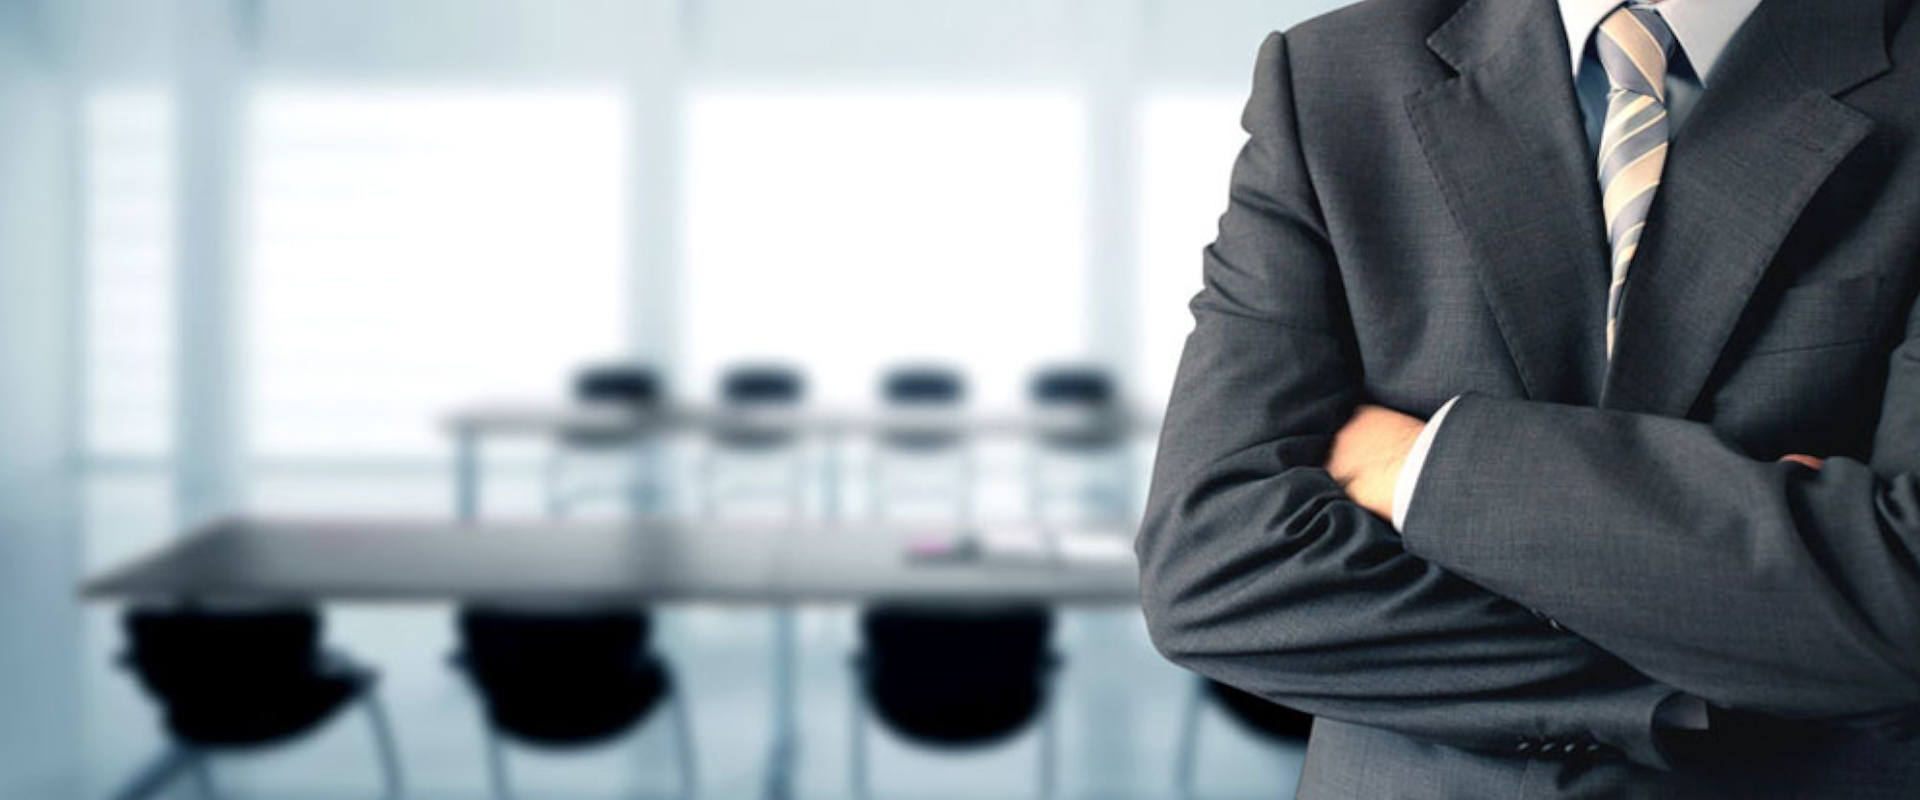 Join the leading Sales and Marketing Institute